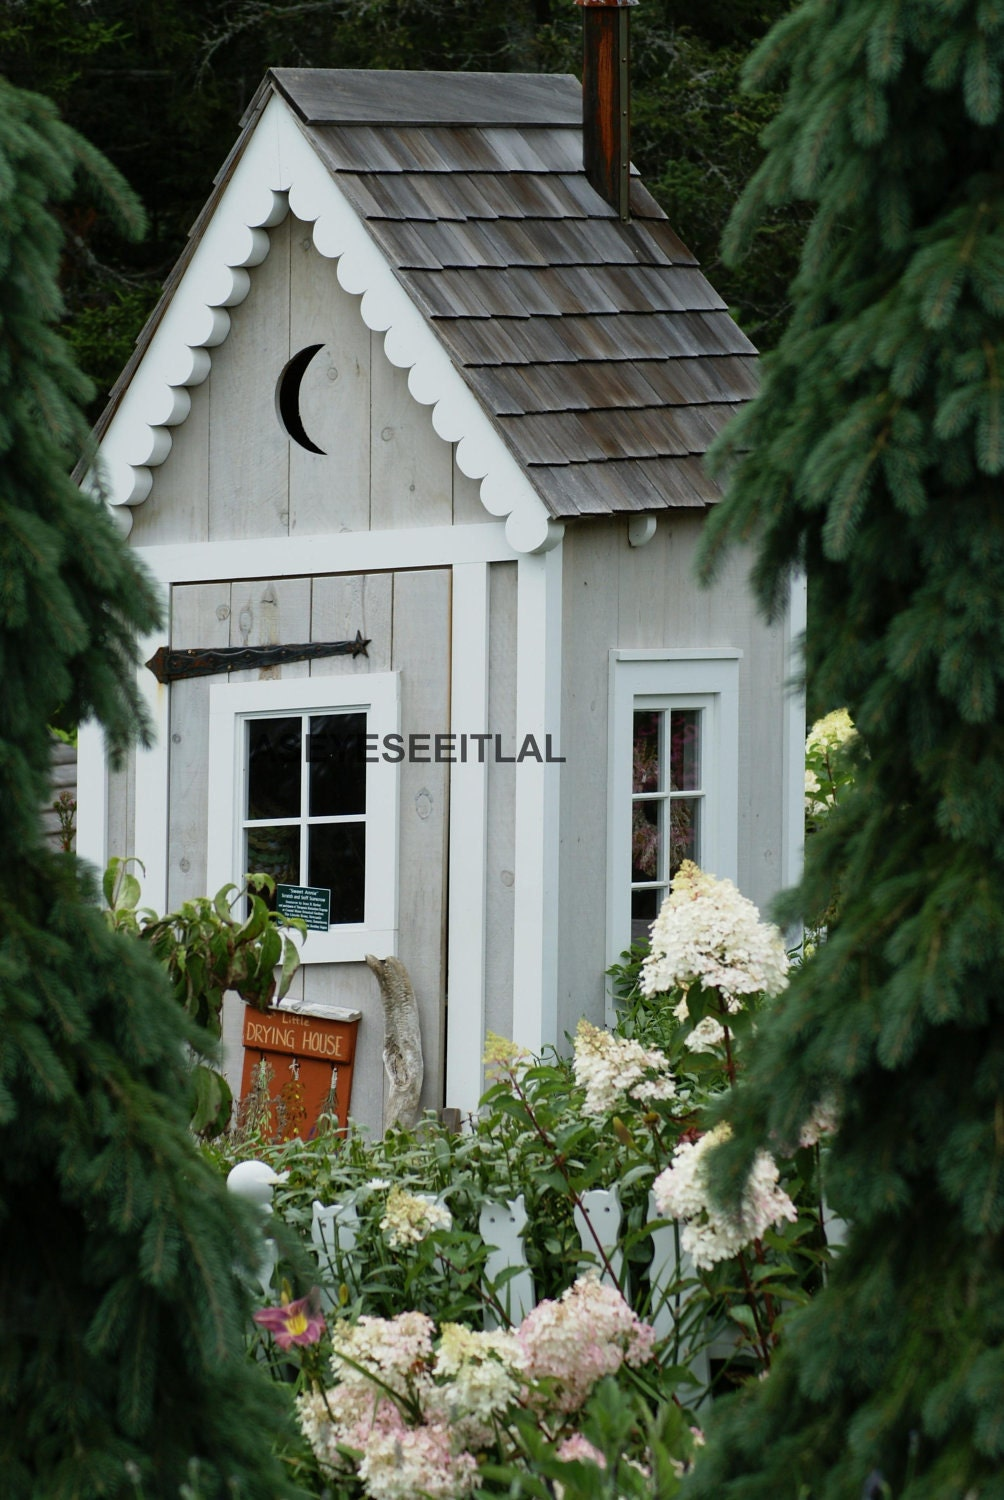 Small shed hidden in the garden 5x7 photo greeting card for Garden shed 5x7